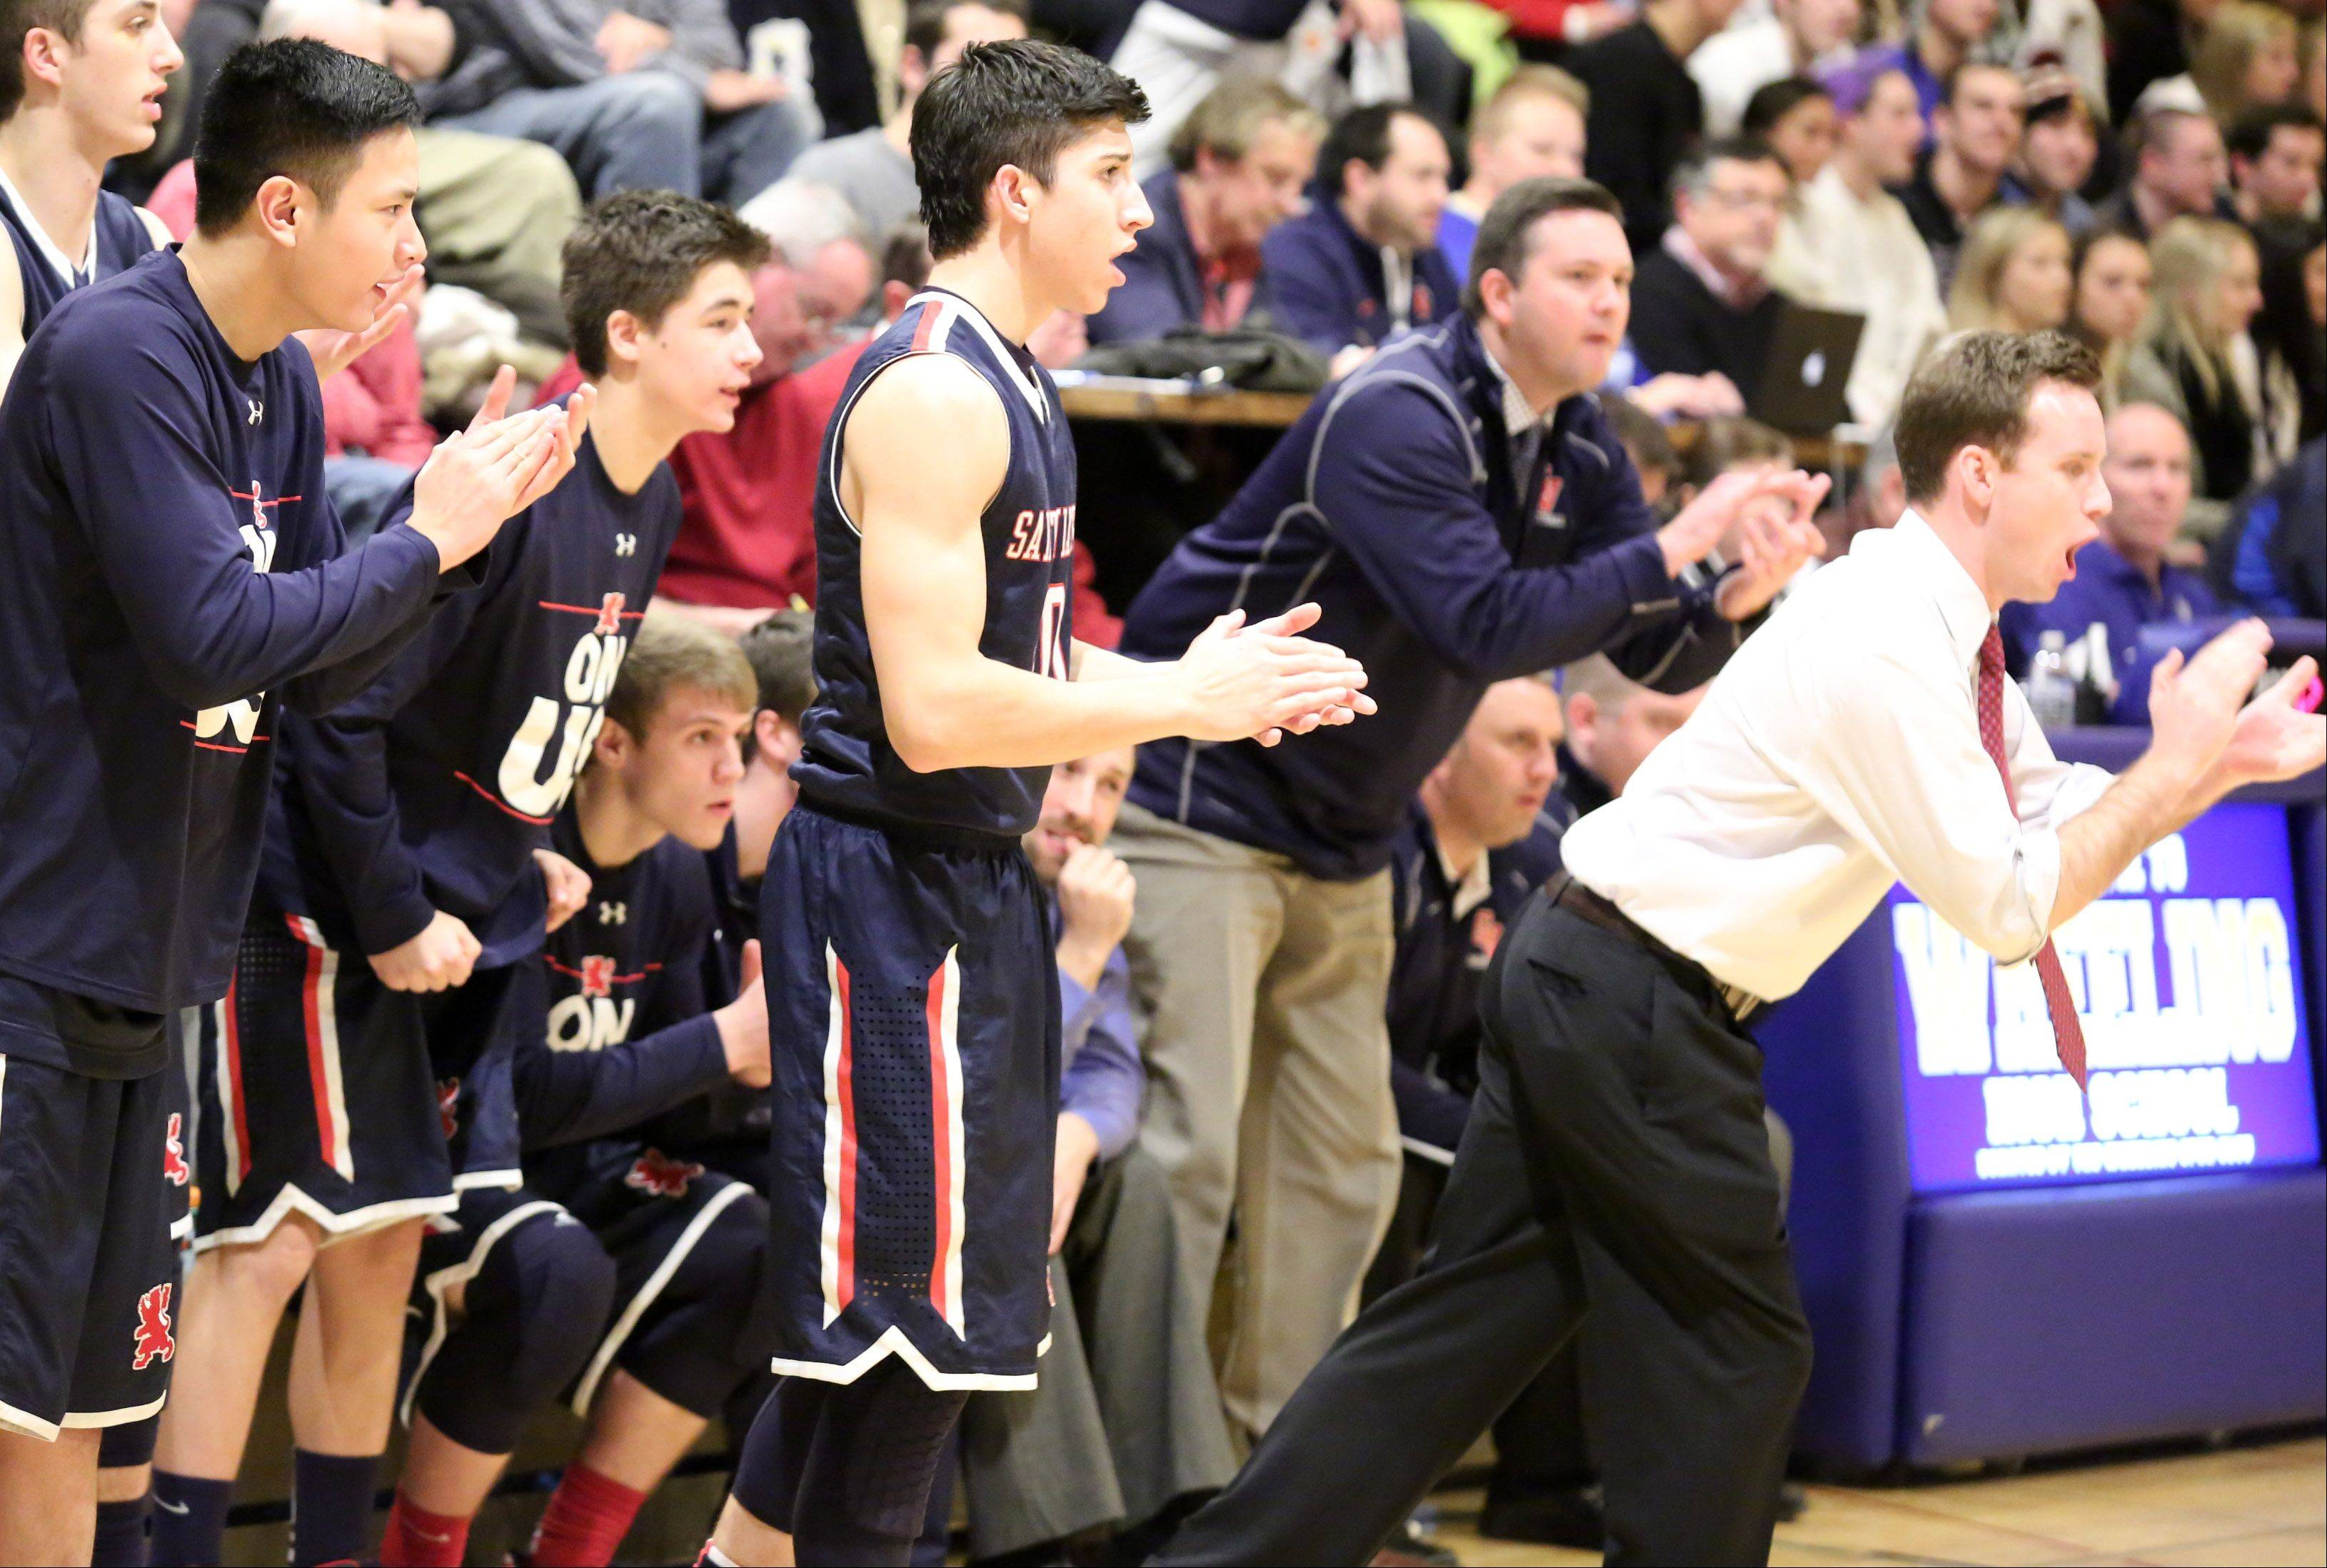 St. Viator head coach Mike Howland and players celebrate a score against Prospect at the Wheeling Hardwood Classic on Friday in Wheeling.